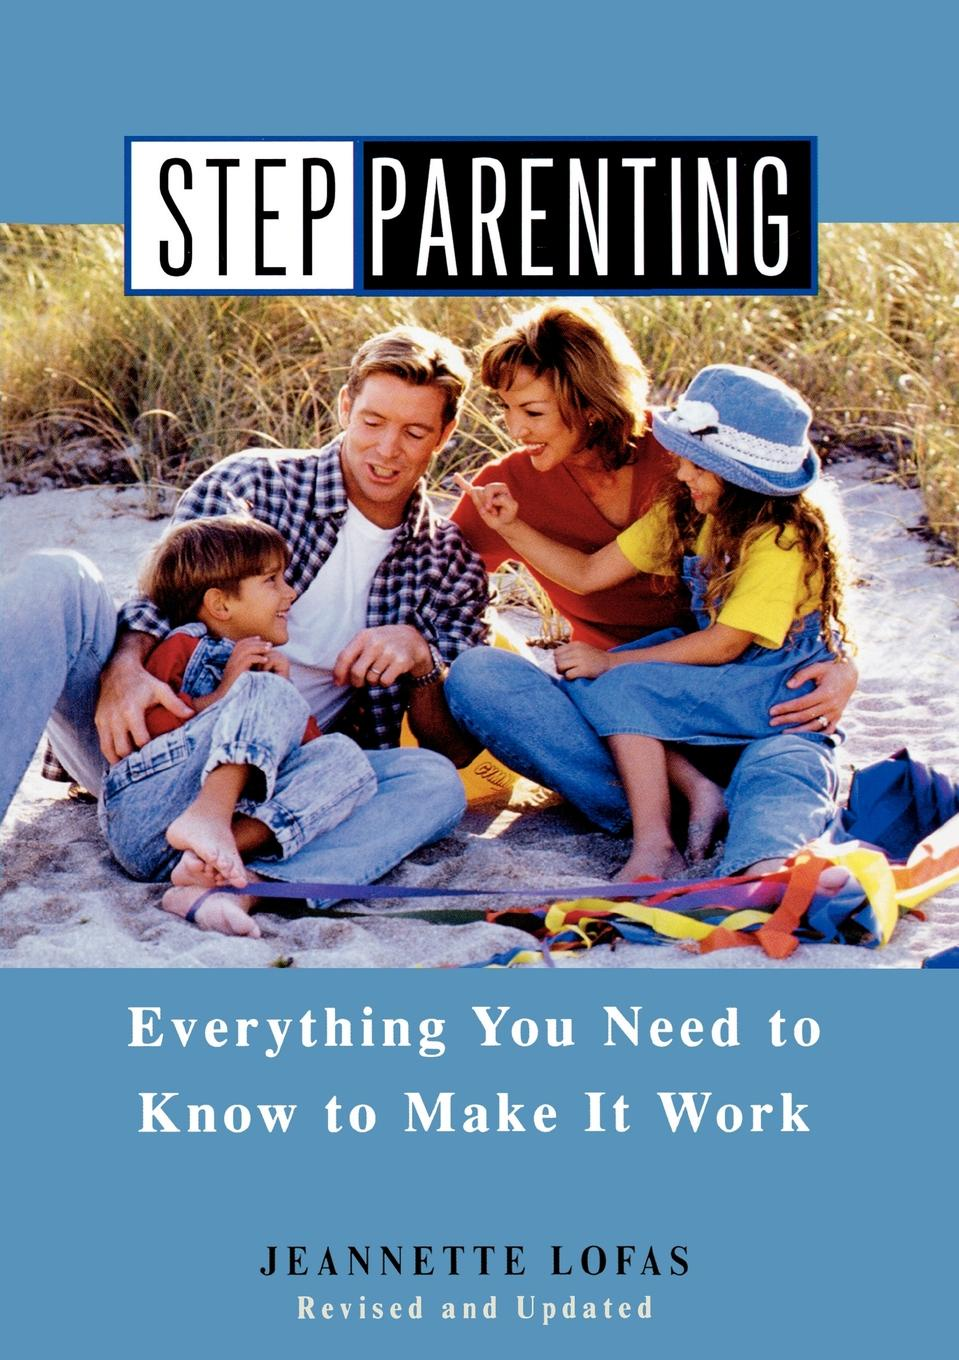 Jeannette Lofas Stepparenting. Everything You Need to Know to Make It Work pete matthew the meaningful money handbook everything you need to know and everything you need to do to secure your financial future